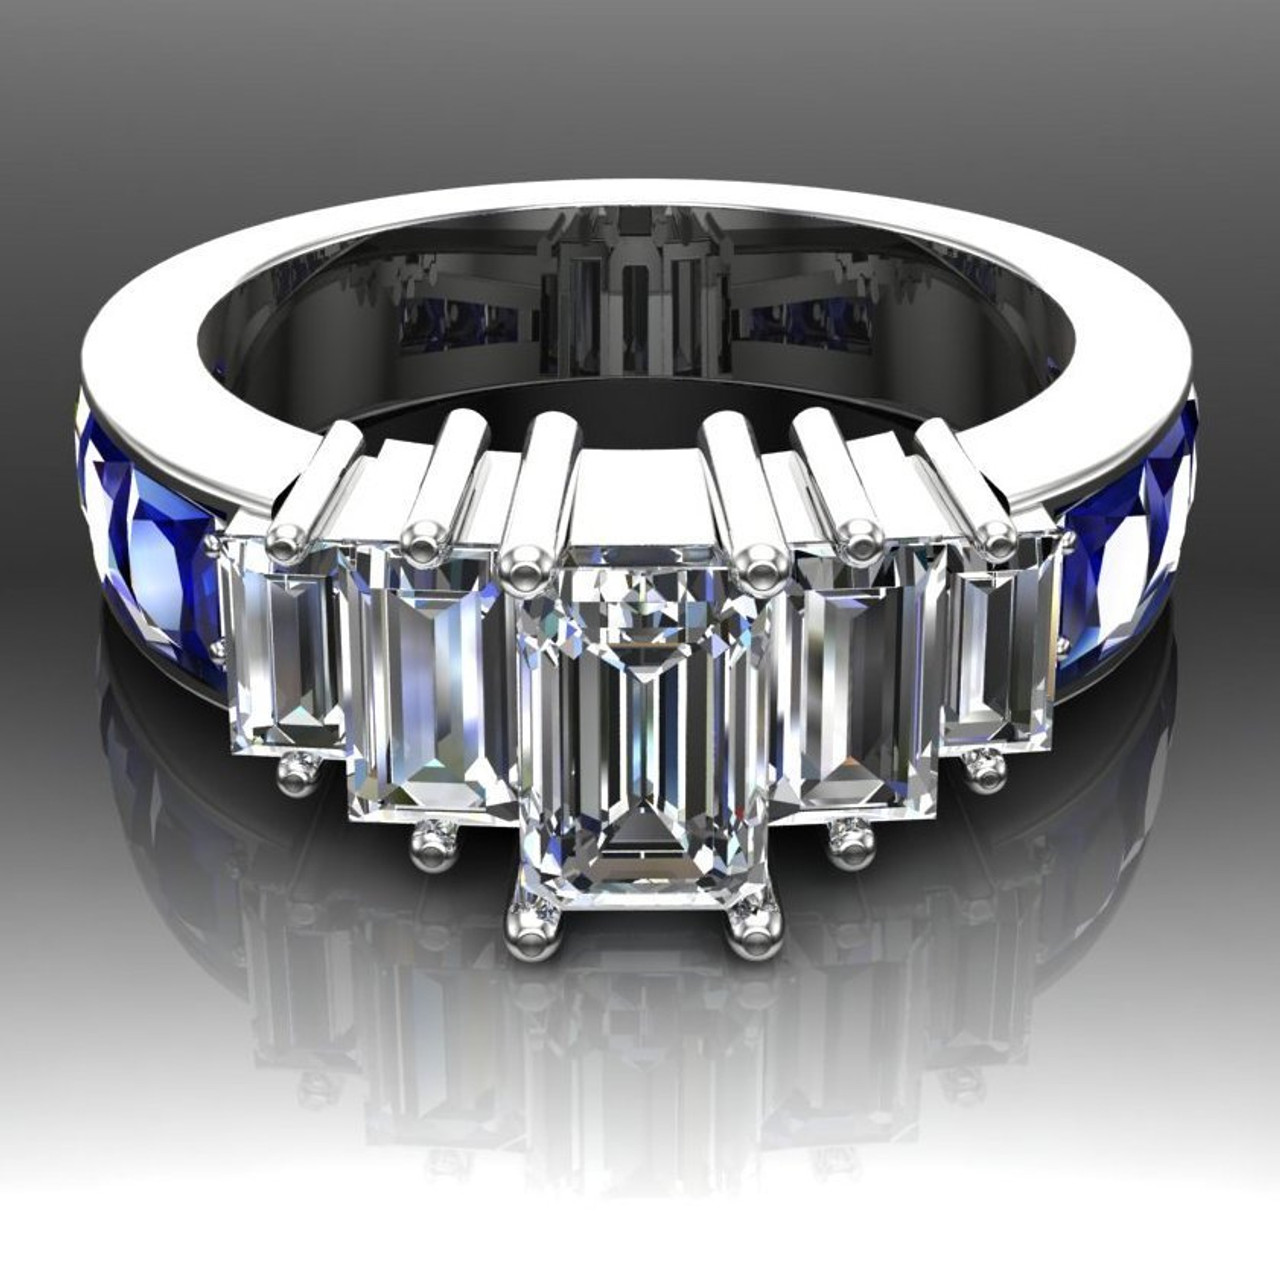 Diamond Engagement Ring 5 Stone With Emerald Cut And Baguette Diamonds And Blue Sapphire Accents Cityscape Design